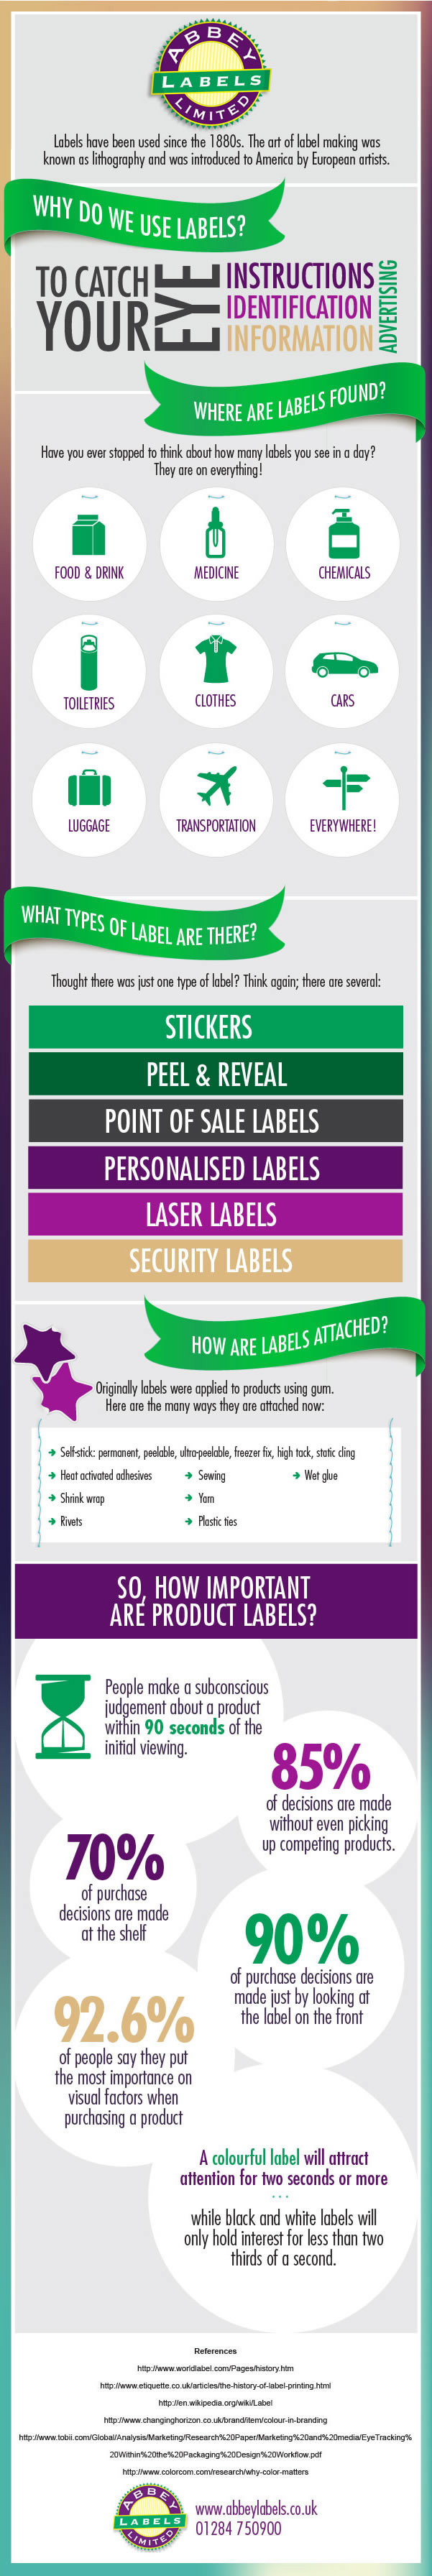 Why we use labels